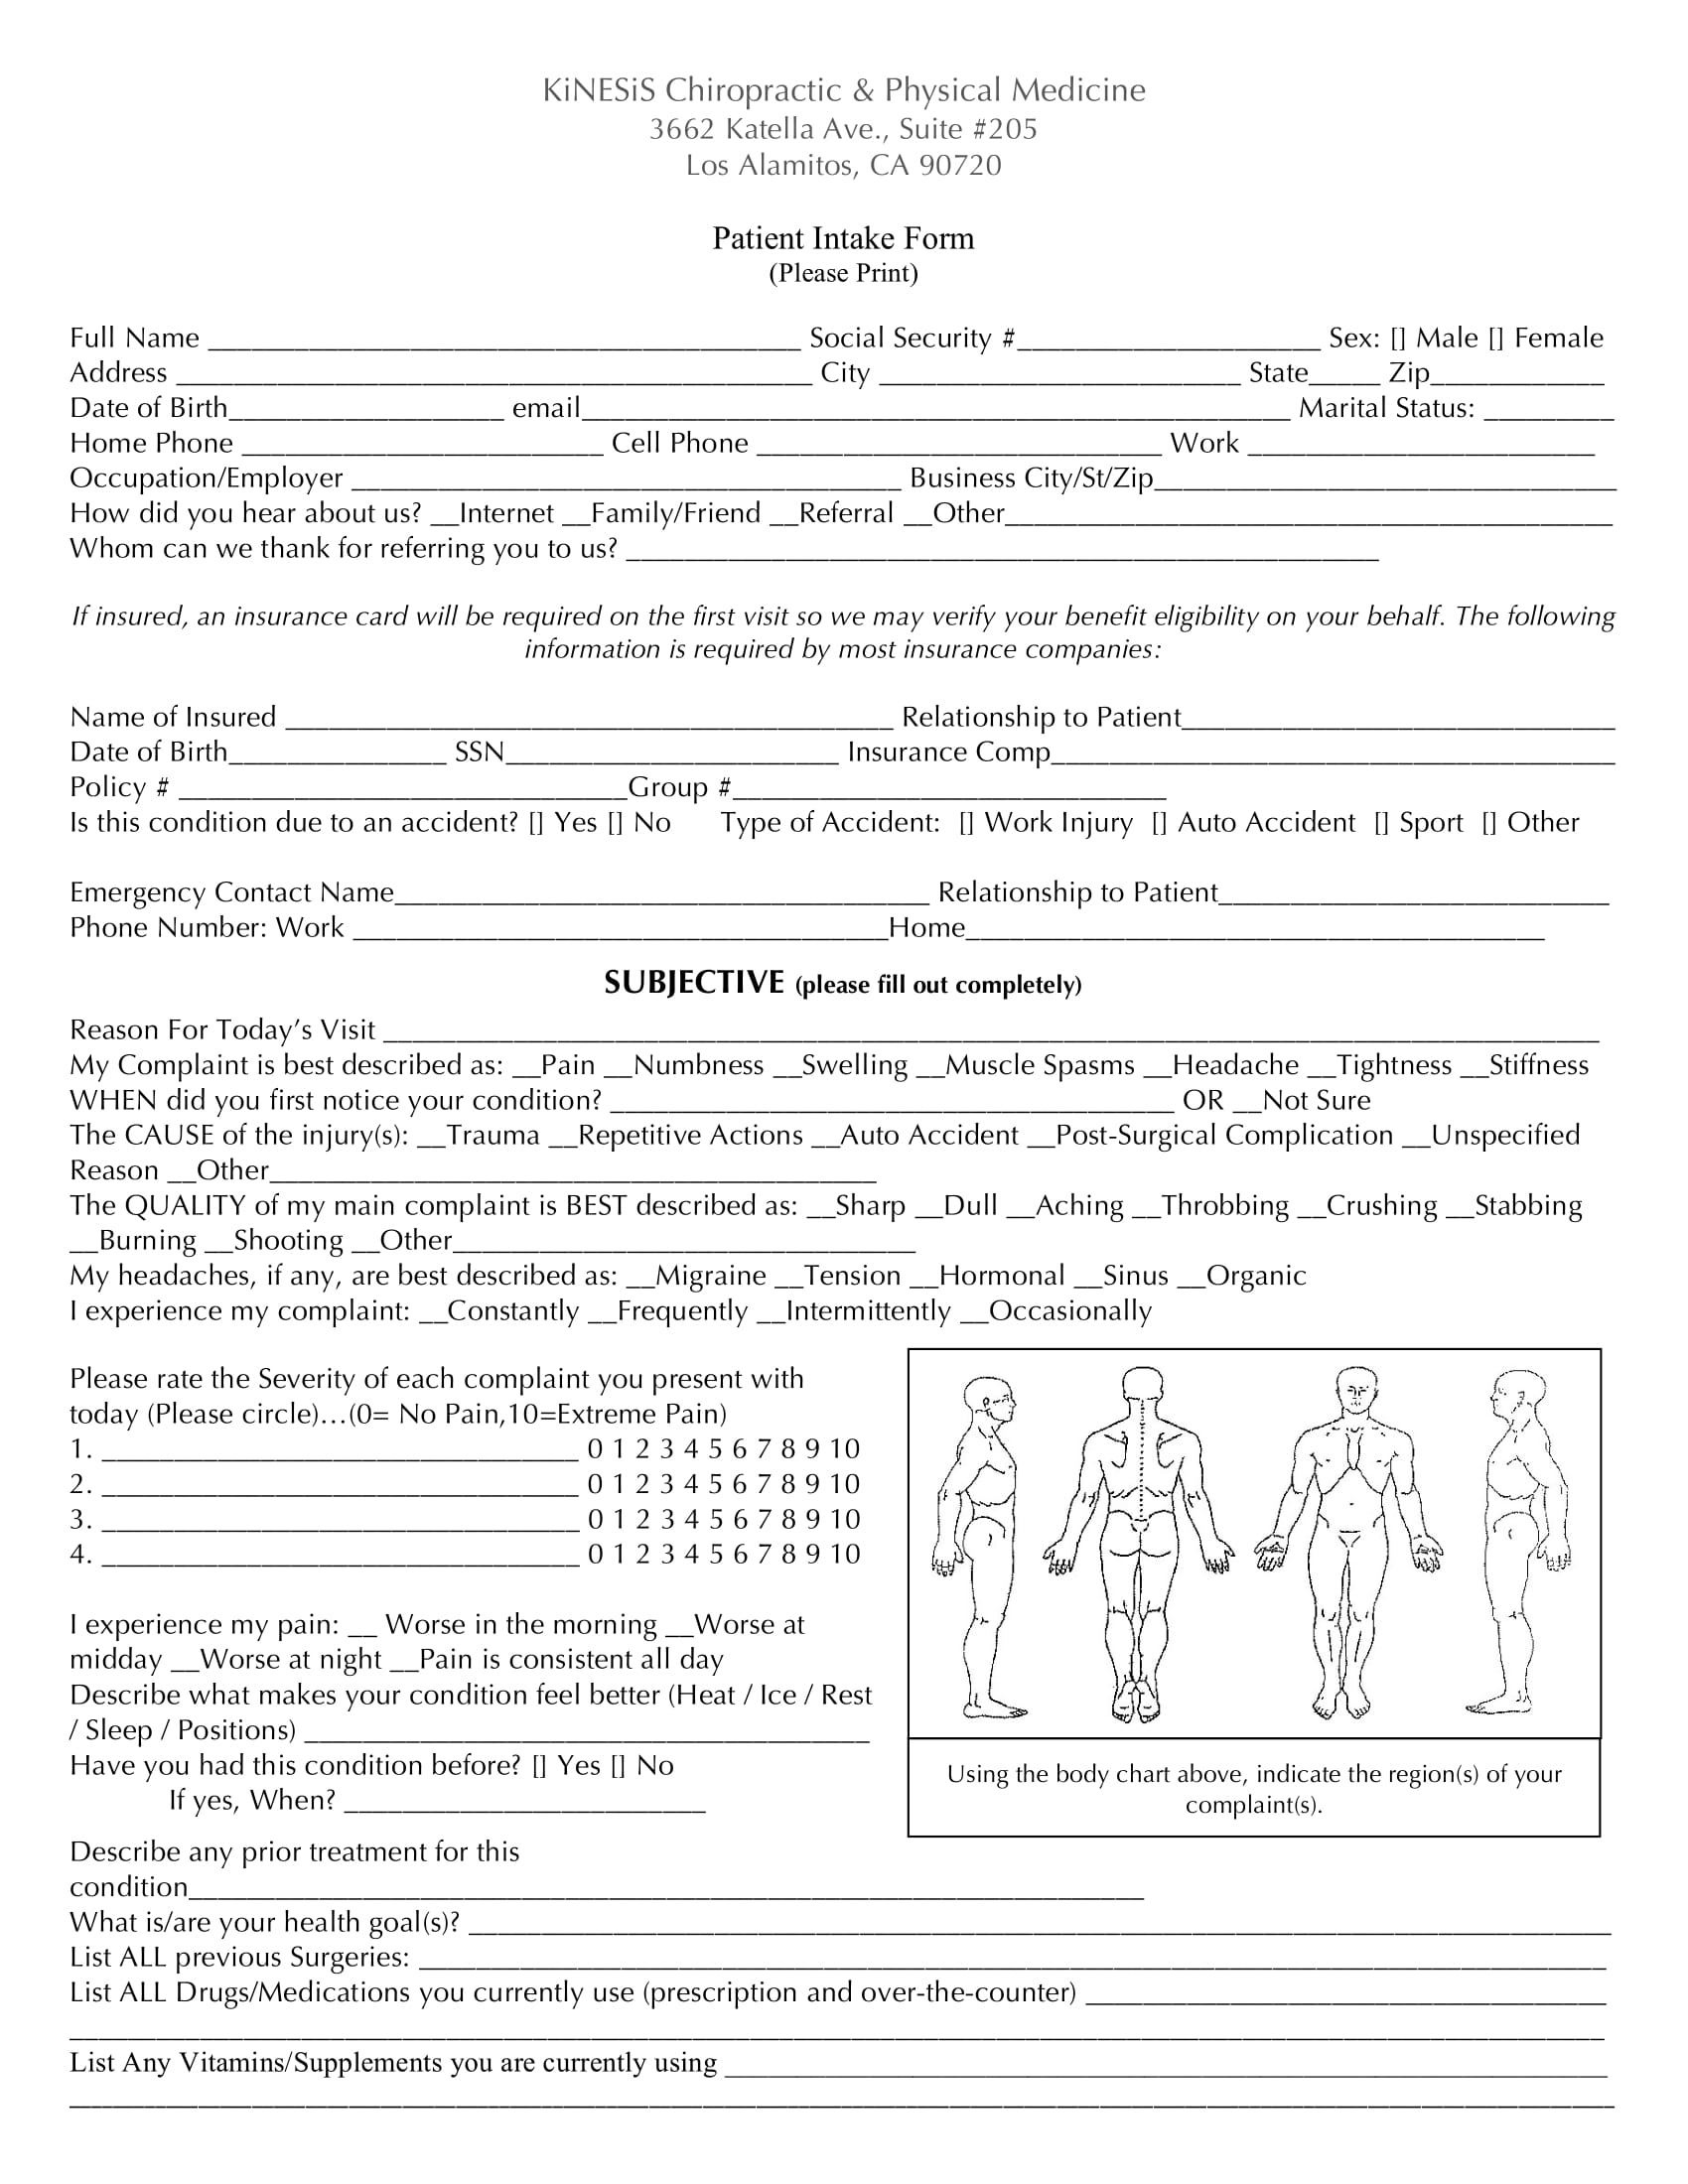 physical medicine patient intake form 1